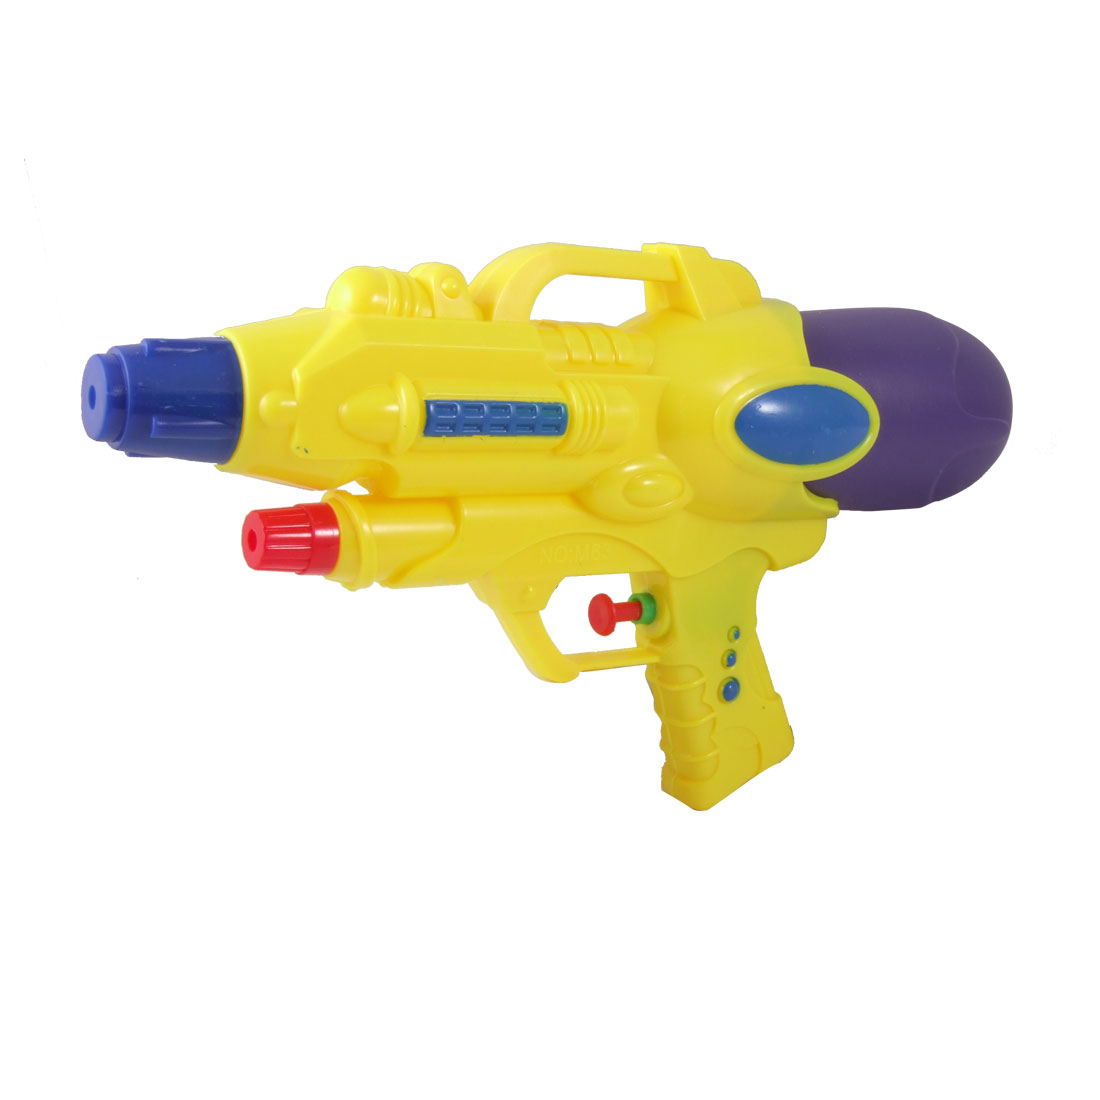 Yellow Purple Trigger Rocket Water Gun Squirt Gun Toy for Children